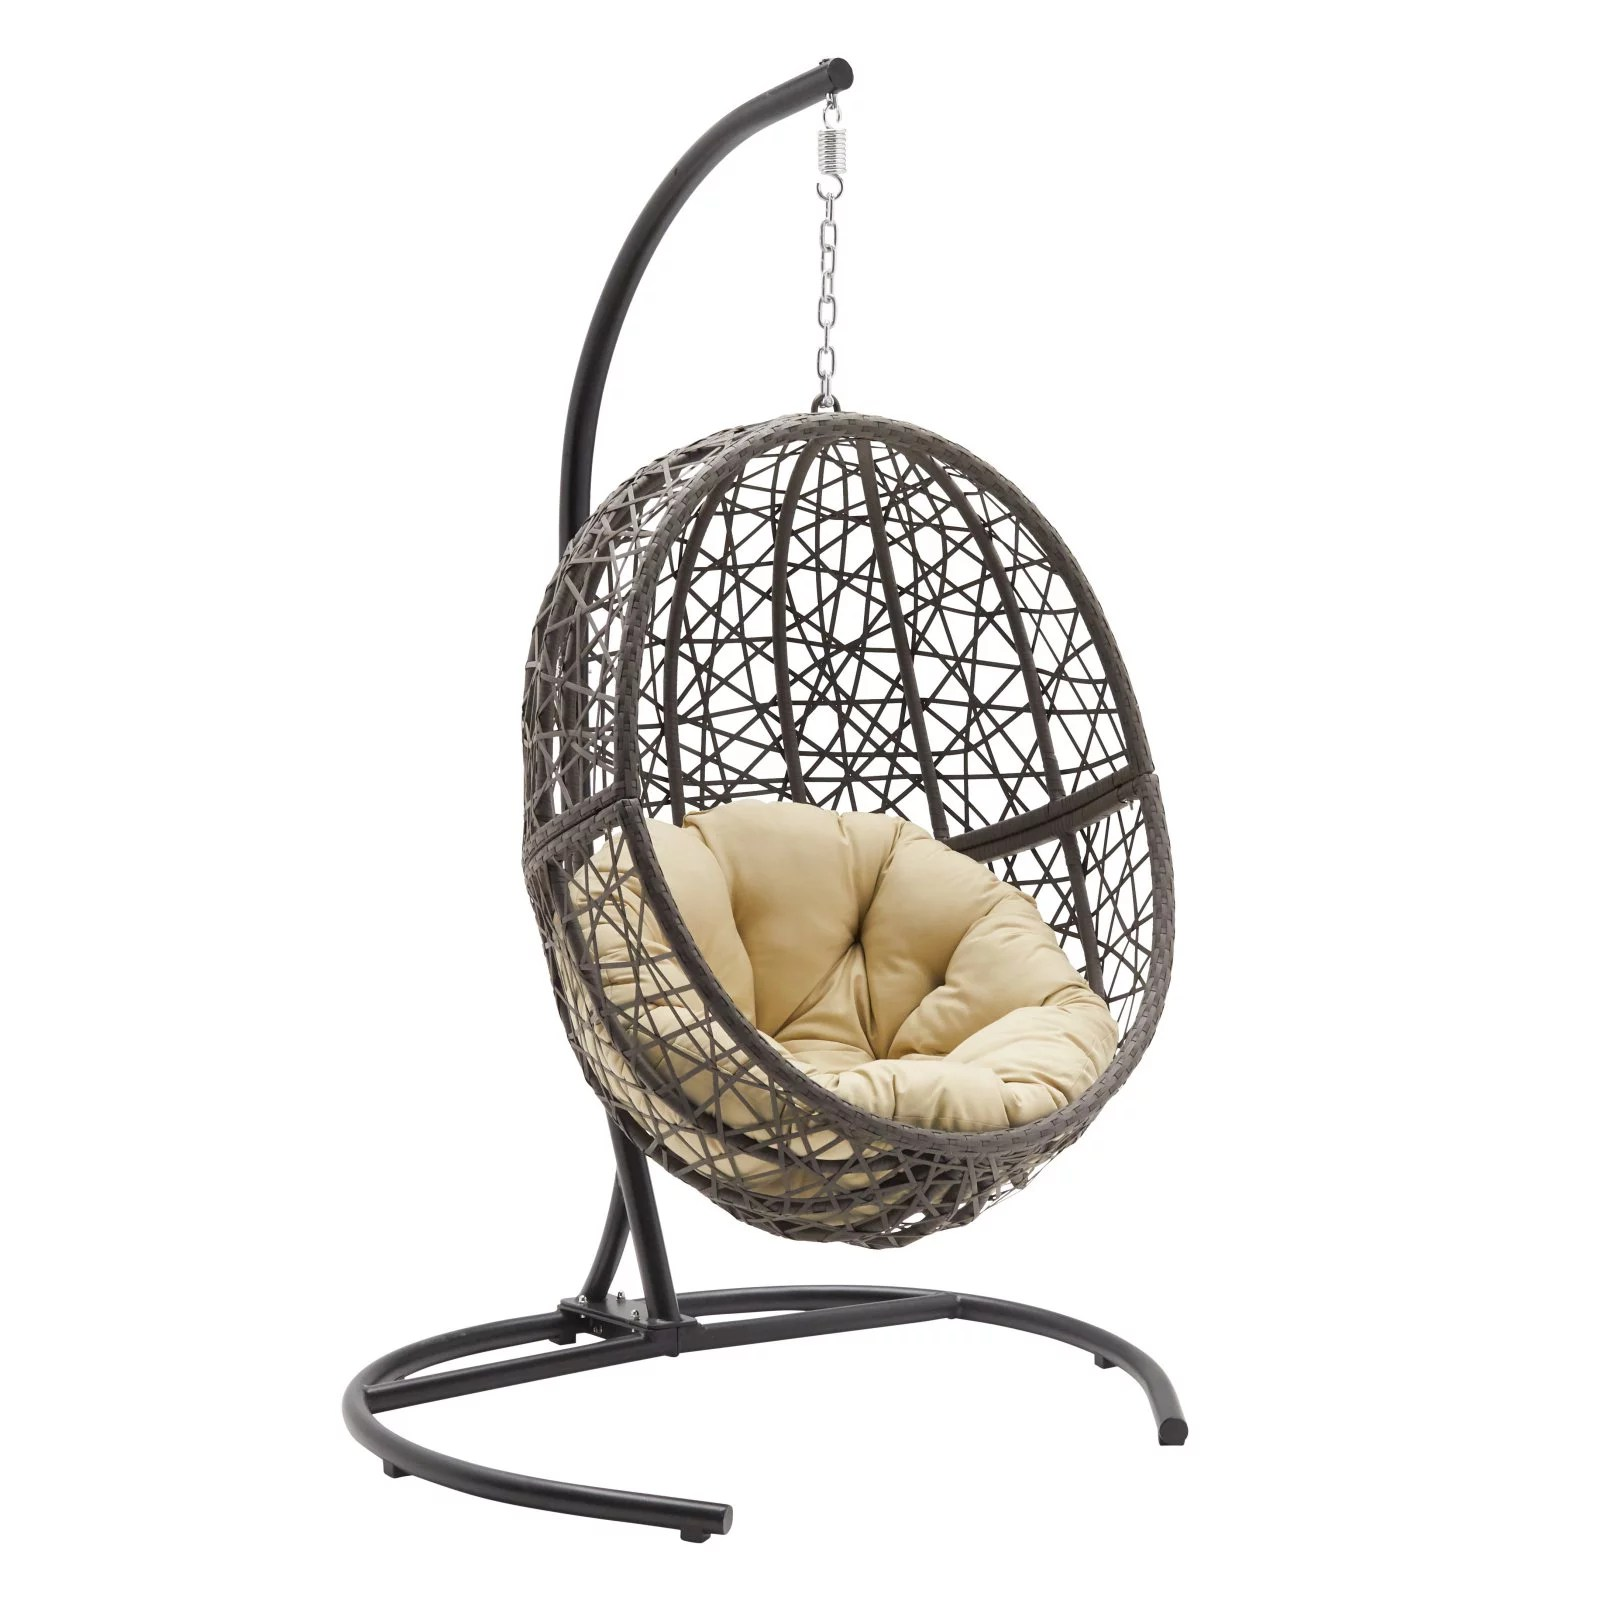 Wicker Egg Chairs For Sale Belham Living Resin Wicker Hanging Egg Chair With Cushion And